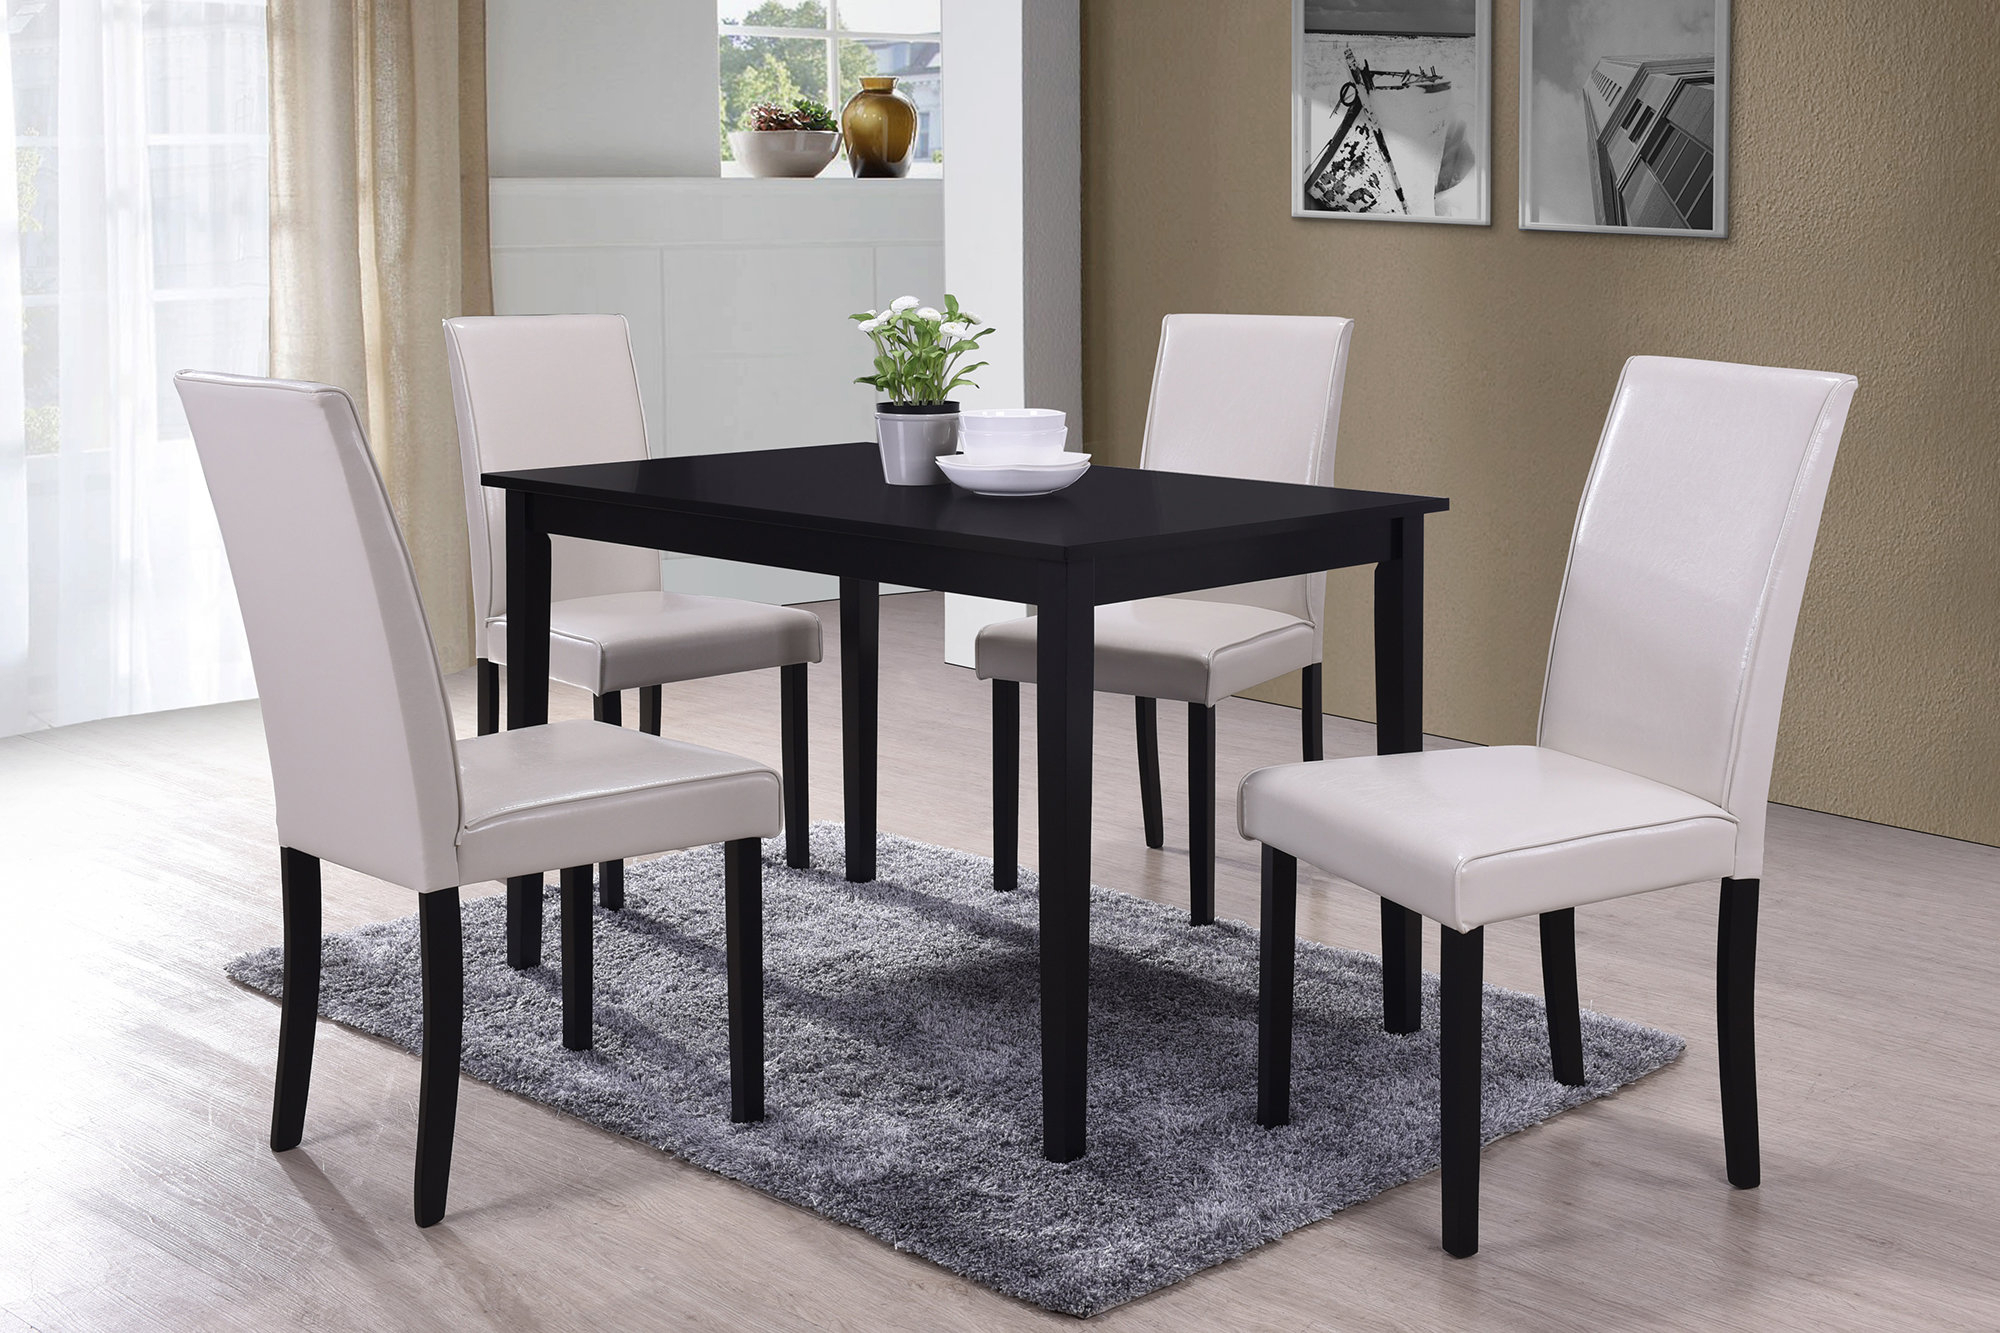 Widely Used Noyes 5 Piece Dining Sets With Macneil 5 Piece Dining Set (View 8 of 20)